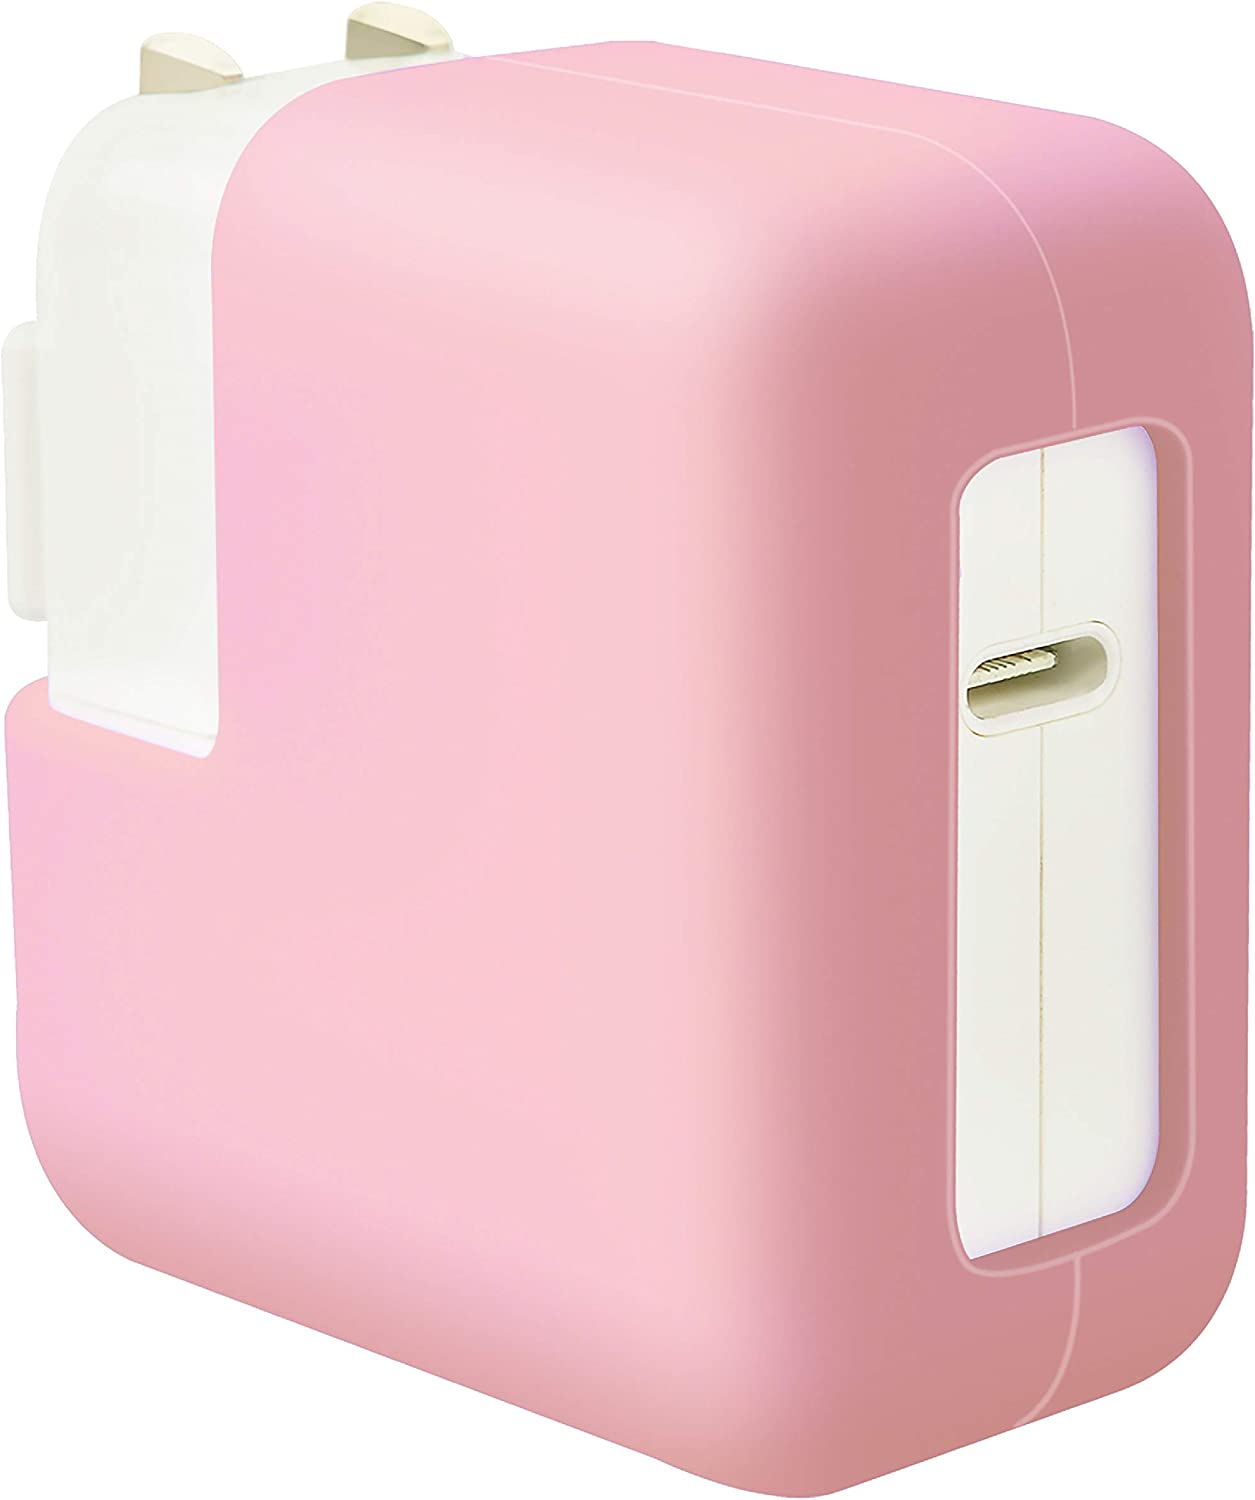 LuvCase MacBook Charger Case Soft Silicone Cover for MacBook Pro 13 Inch A2251/A2289/A1425/A2159/A1989/A1708/A1706/A1502 [Full Protection] (Pink)